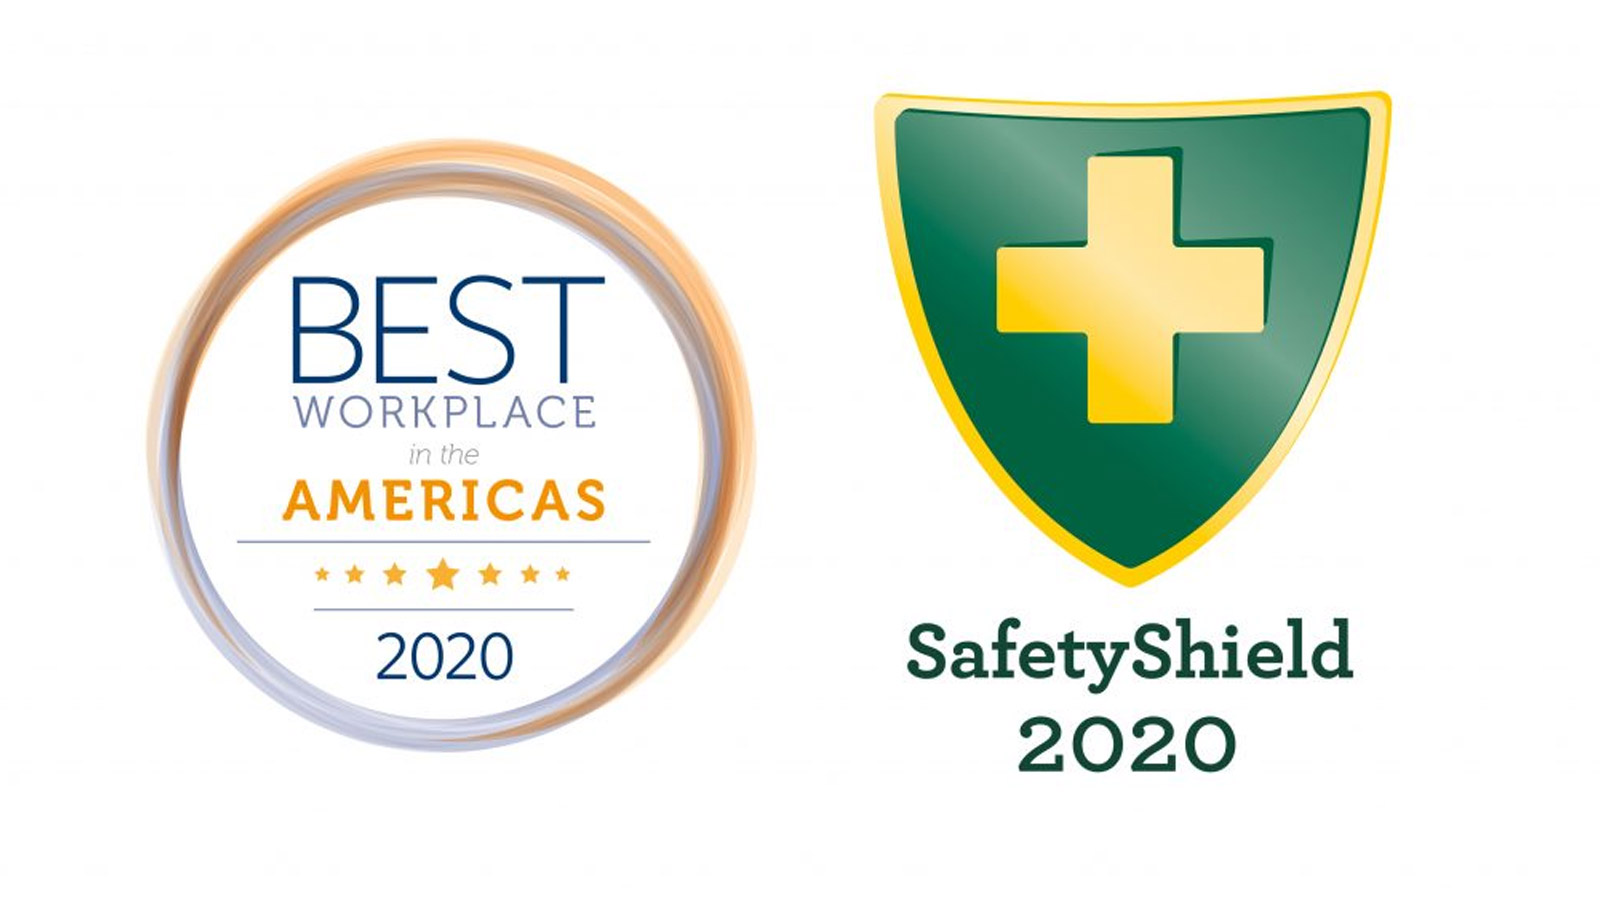 Oliver, Inc. Named Best Work Place and Safety Shield Awardee in Best Workplace in Americas 2020 Competiton